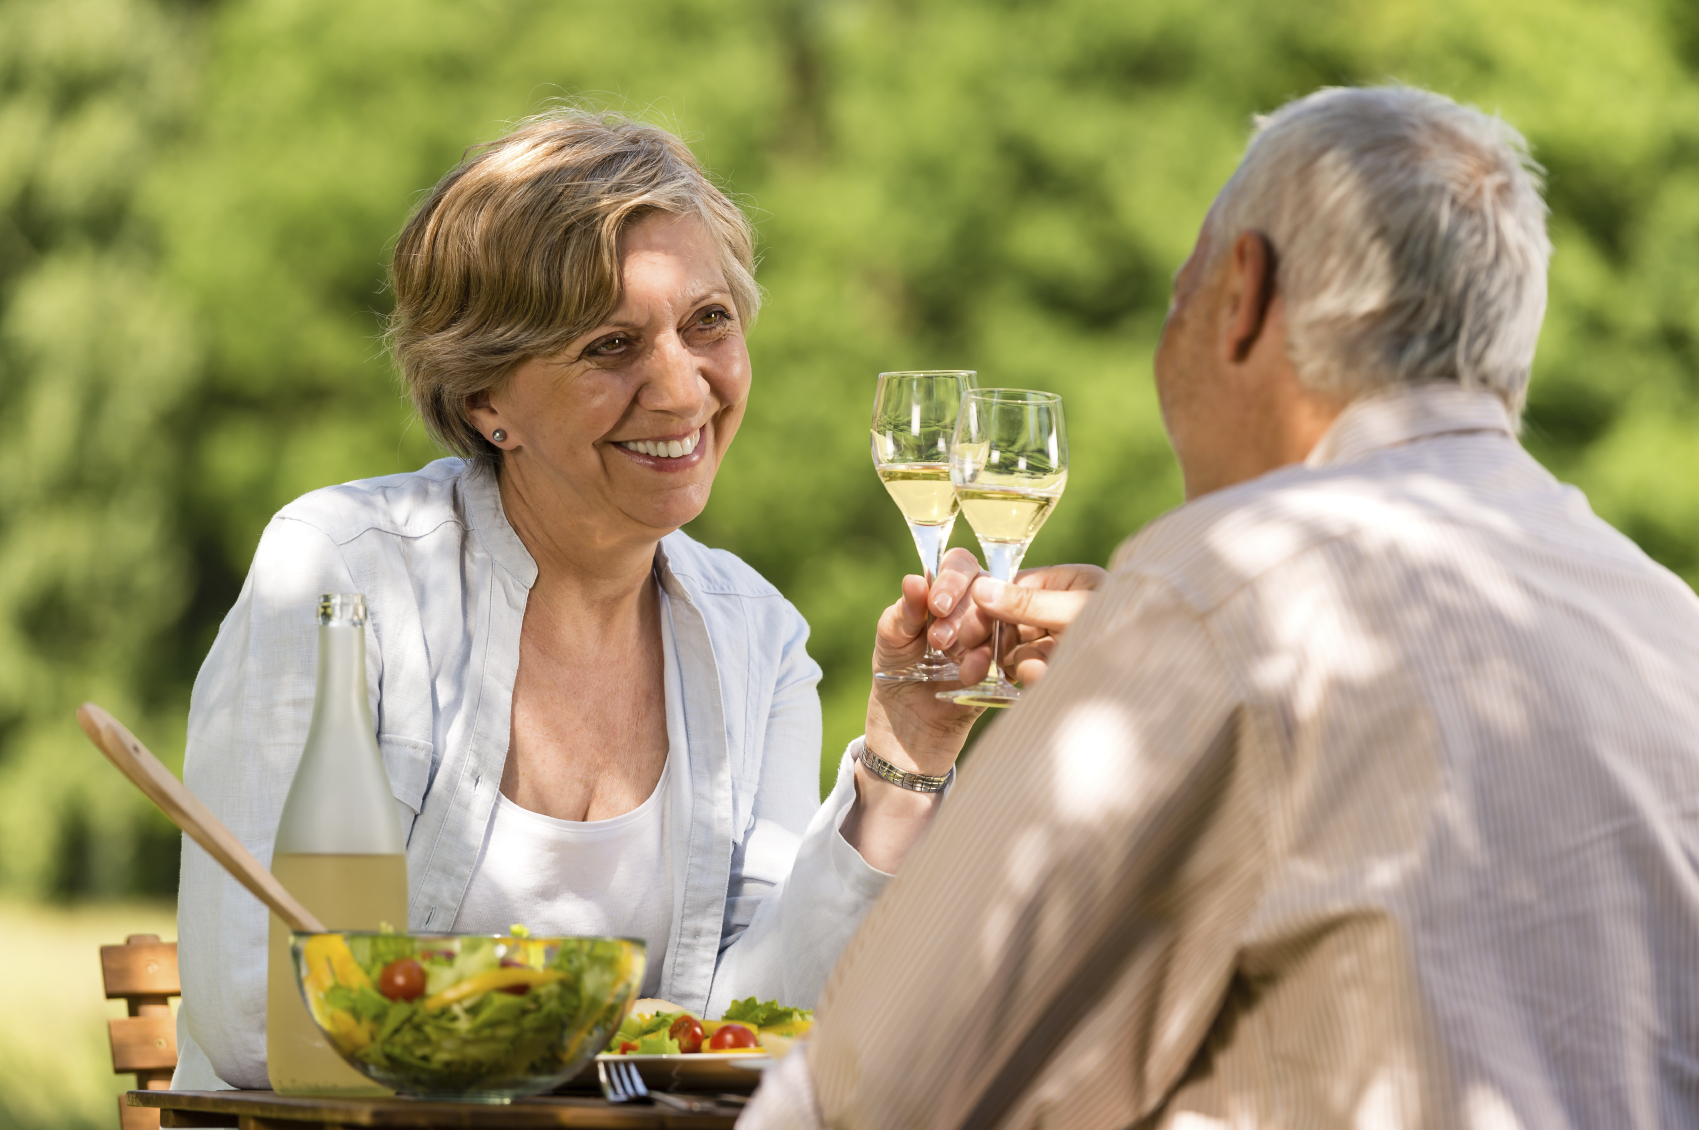 Keep Your Marriage from Becoming a Casualty of Caregiving